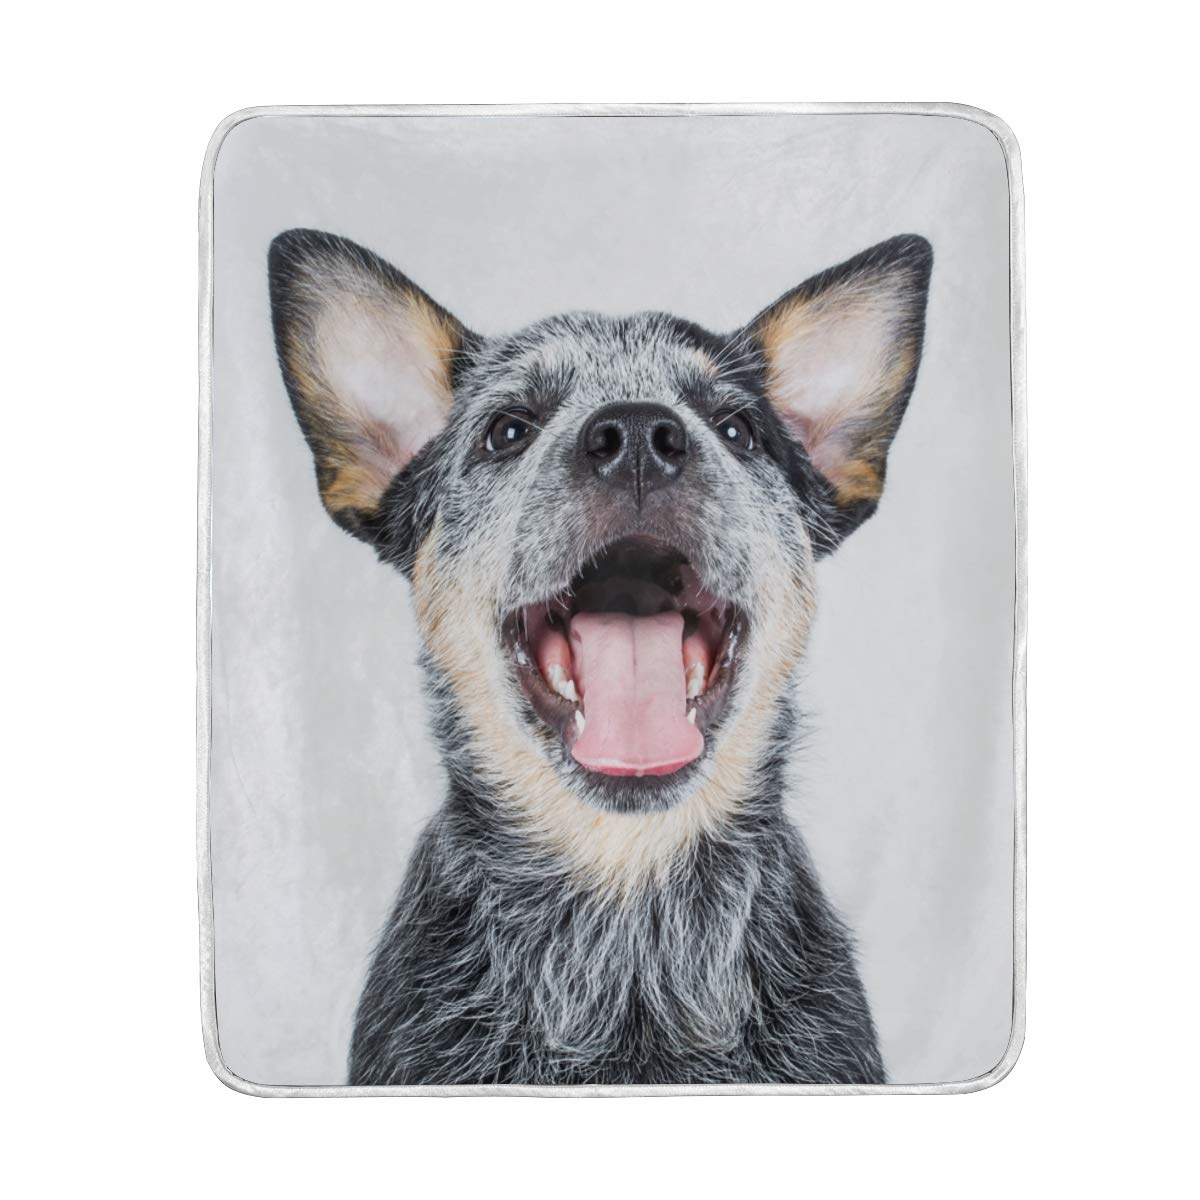 Orediy Soft Throw Blankets Australian Cattle Dog Large Warm Cozy Microfiber Bed Blankets for Couch Sofa 127 x 152 CM